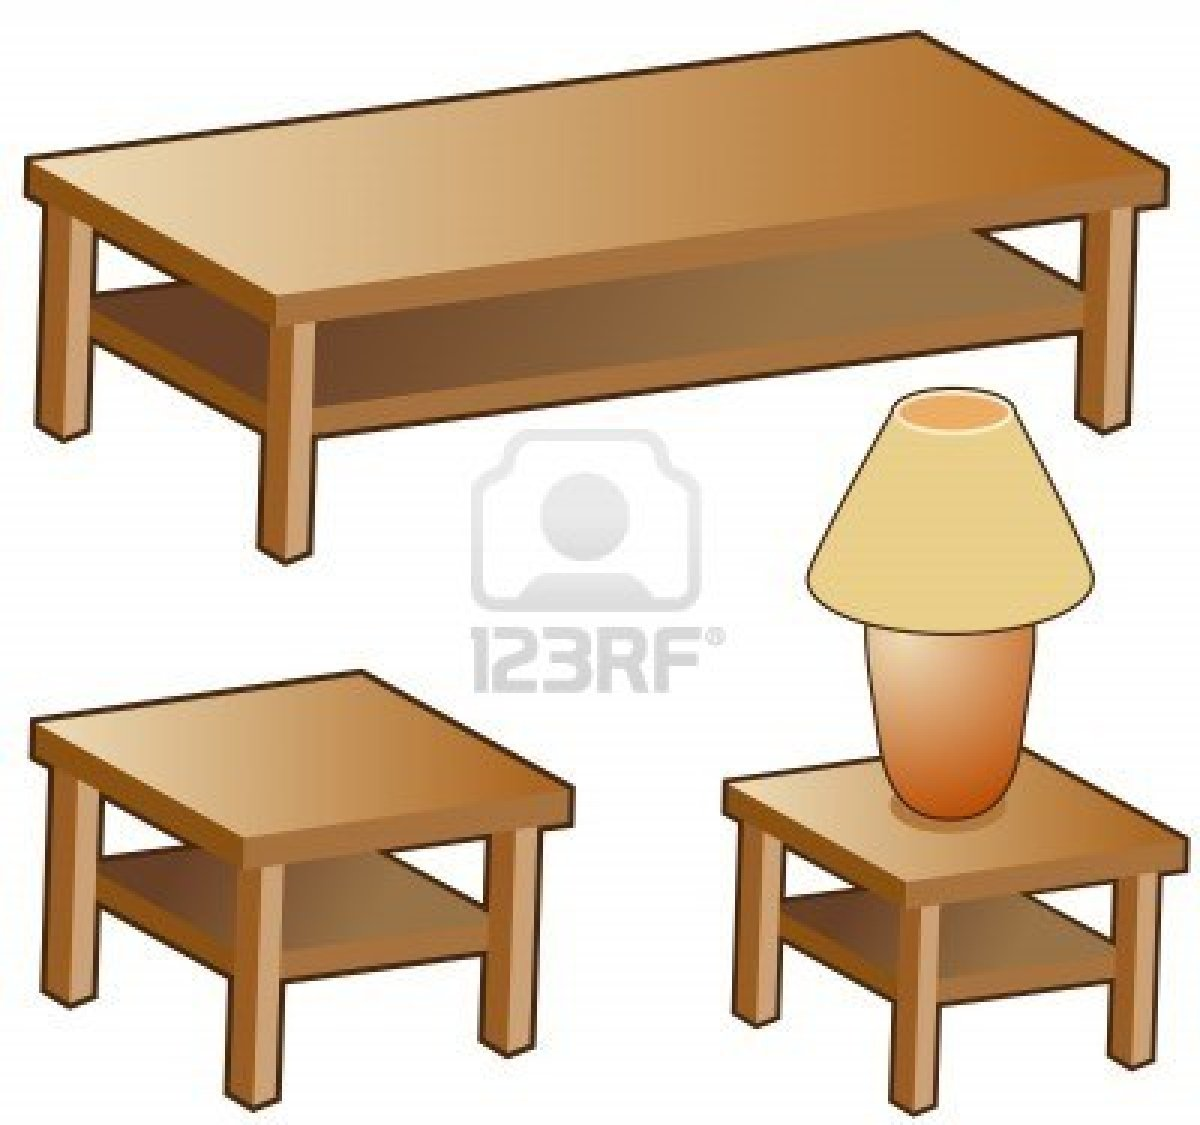 Coffee table clipart banner stock Clip Art Coffee Table Clipart Clipart Suggest, Clip Art ... banner stock